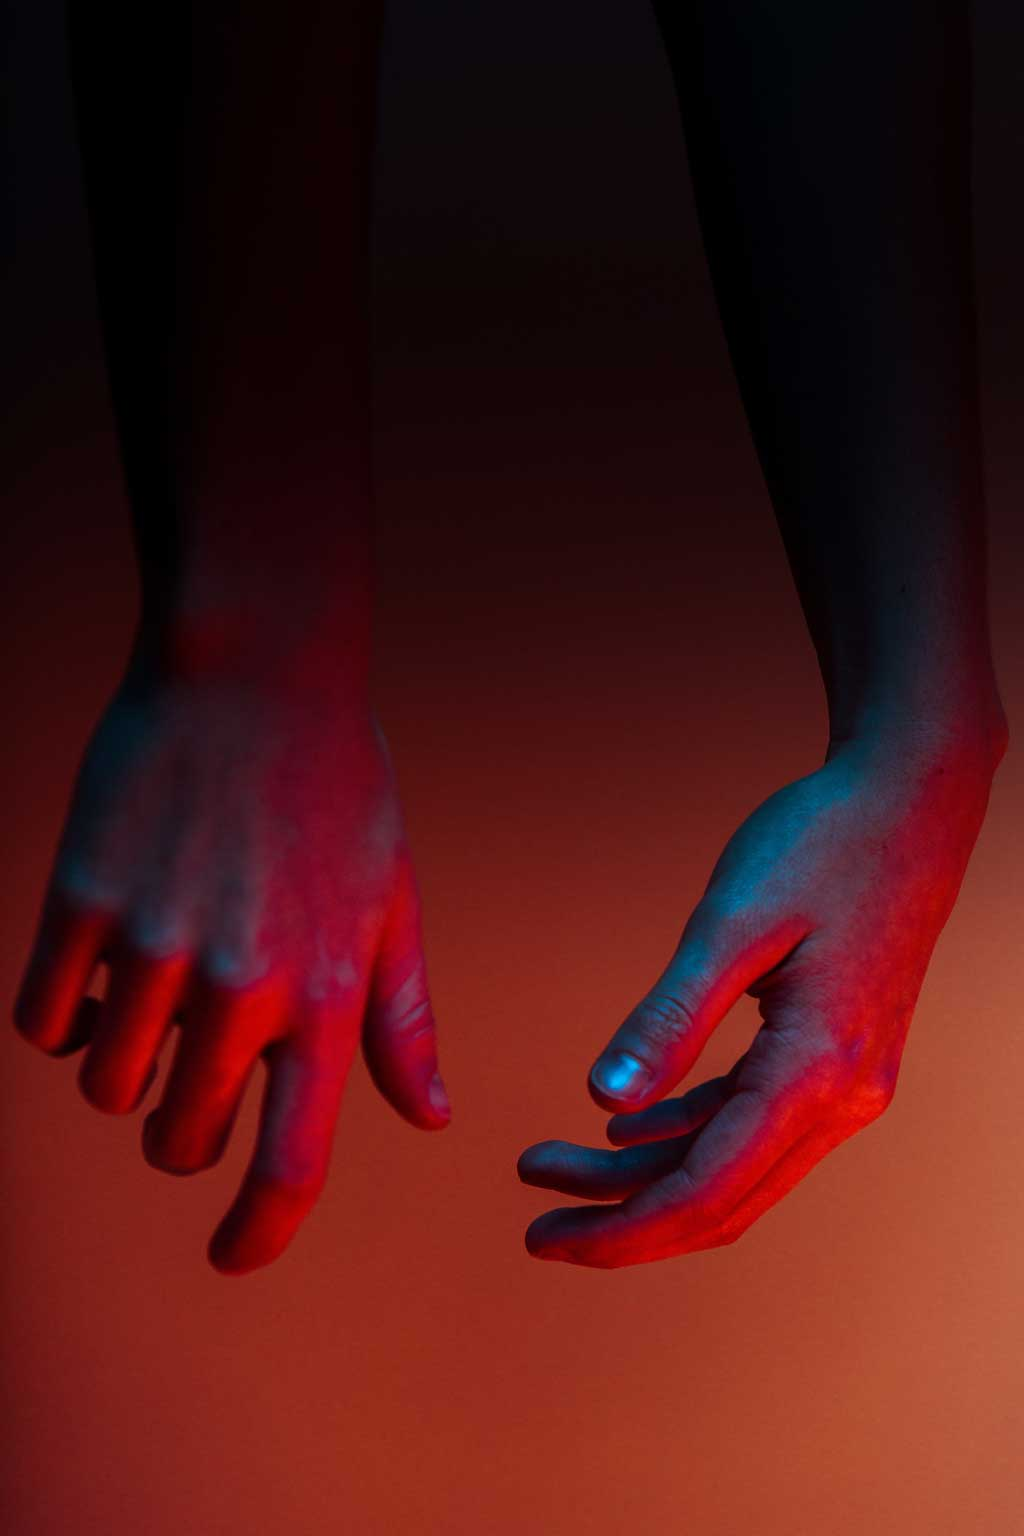 dangling hands bathed in red light